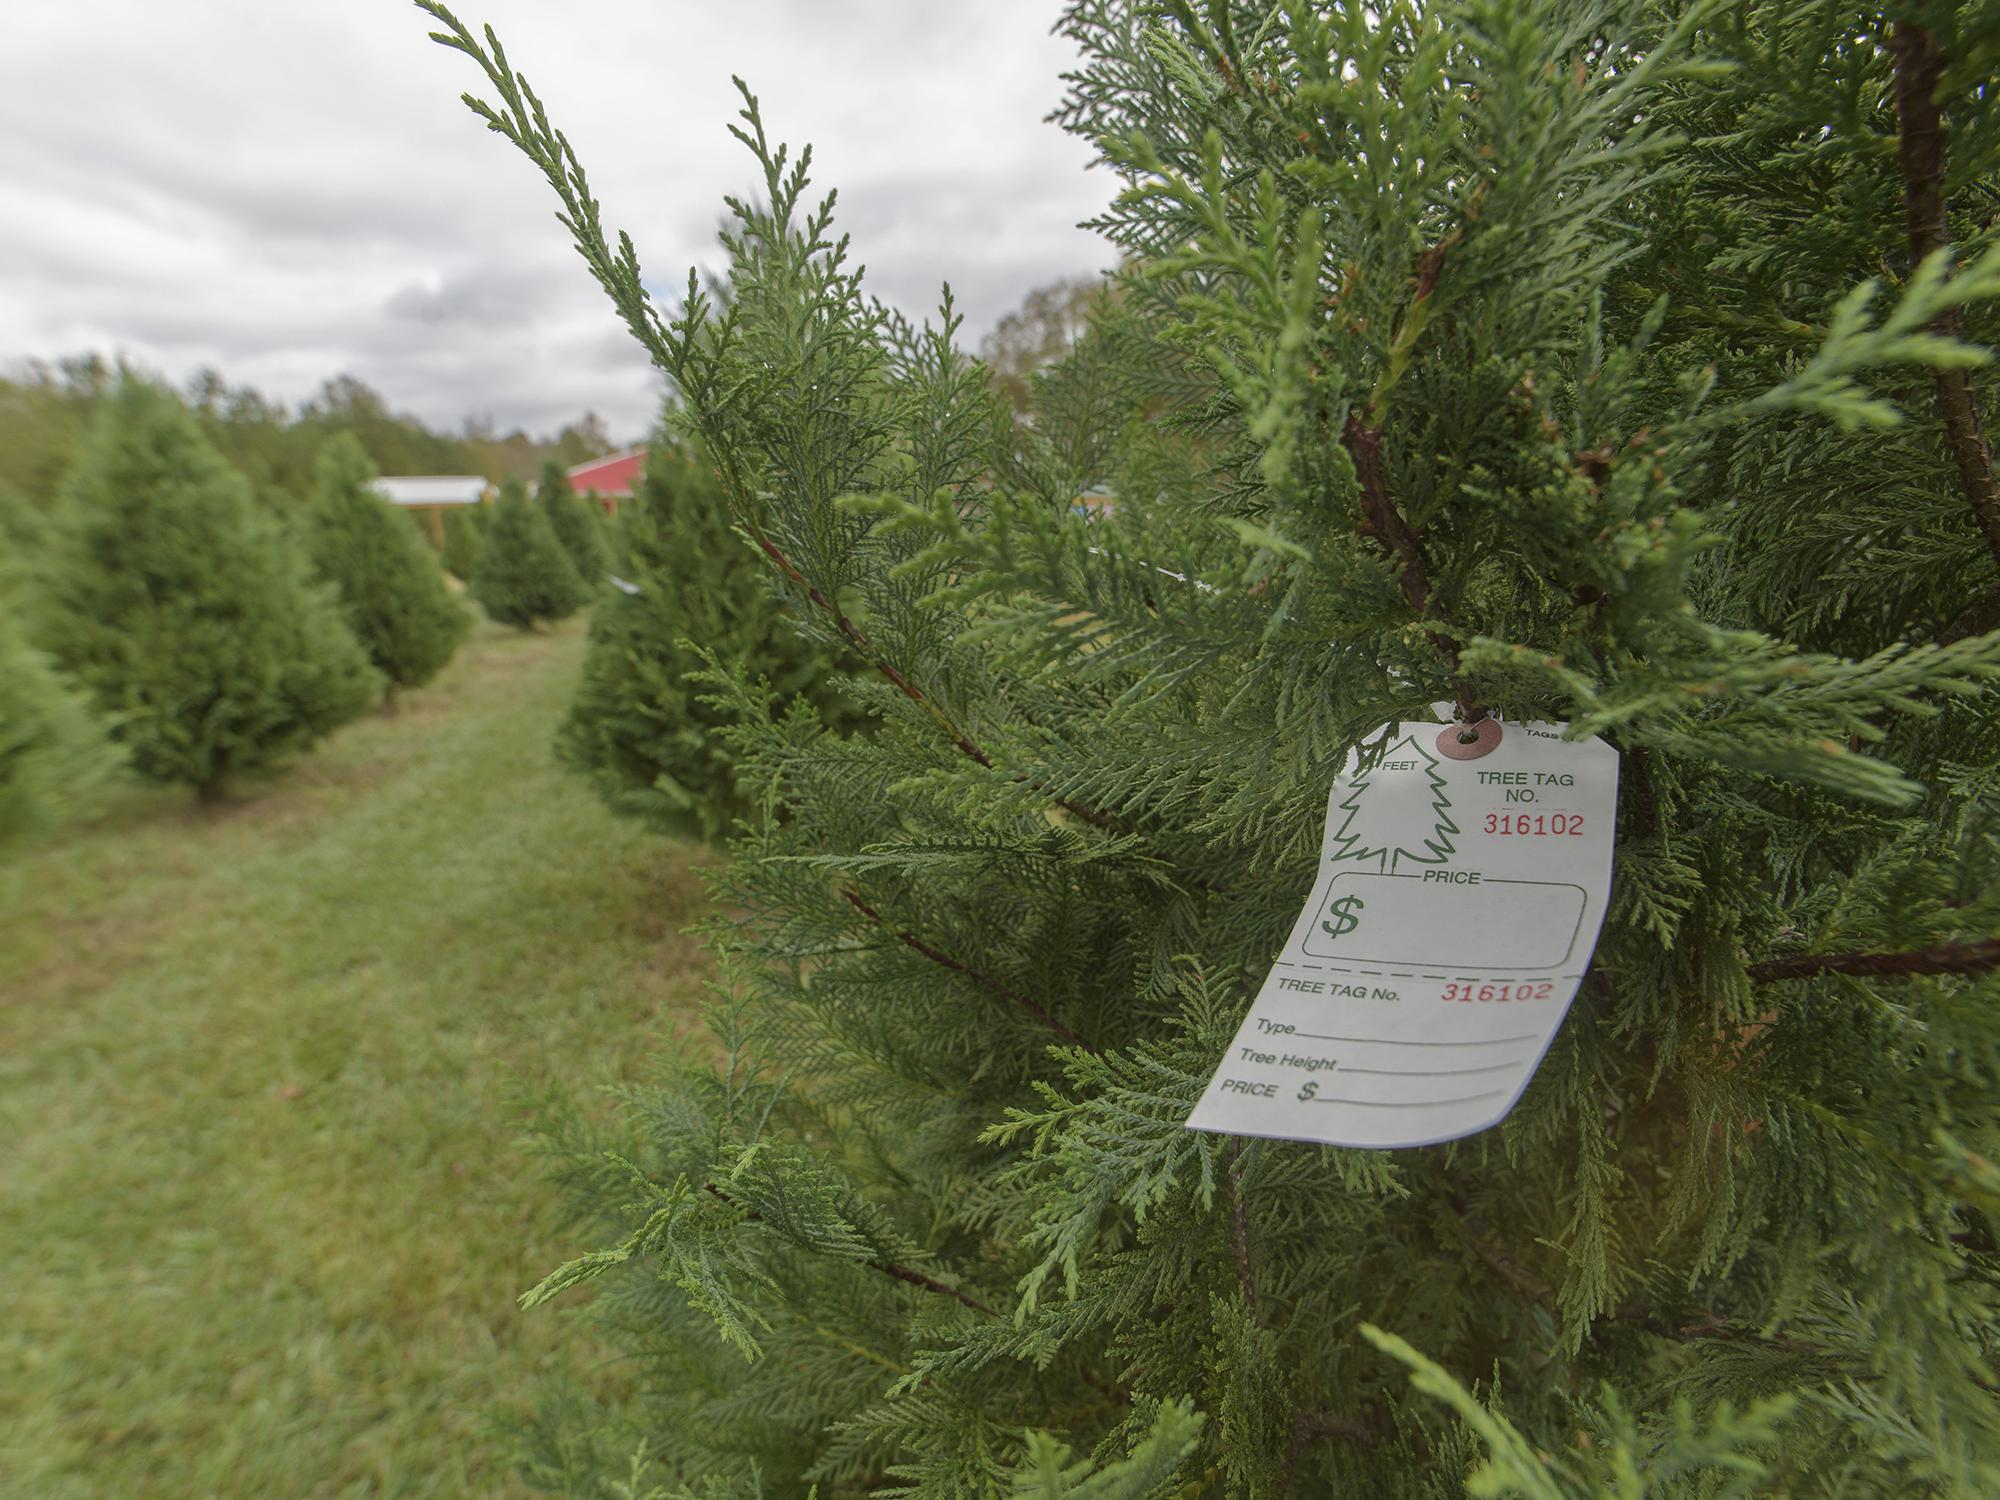 Rows of live green Christmas trees on the left and tree with a pre-printed tag close-up on the right.